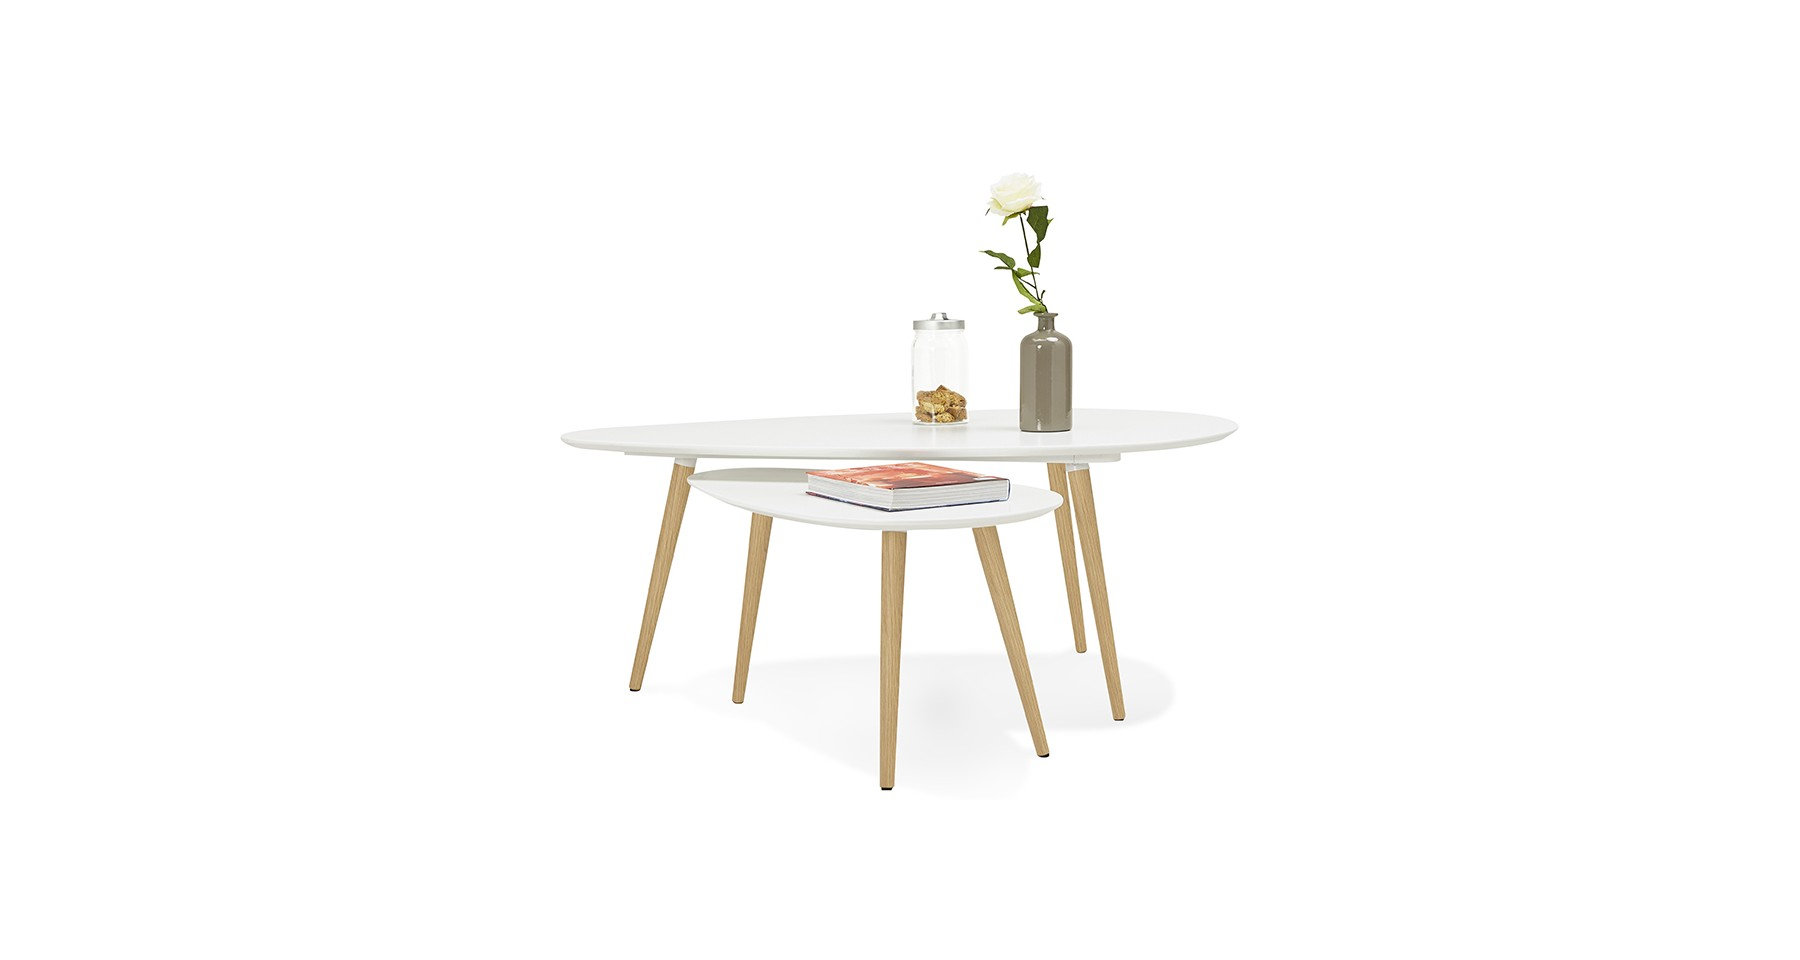 Table Basse Gigogne Blanc Set De 2 Tables Basses Gigognes En Bois